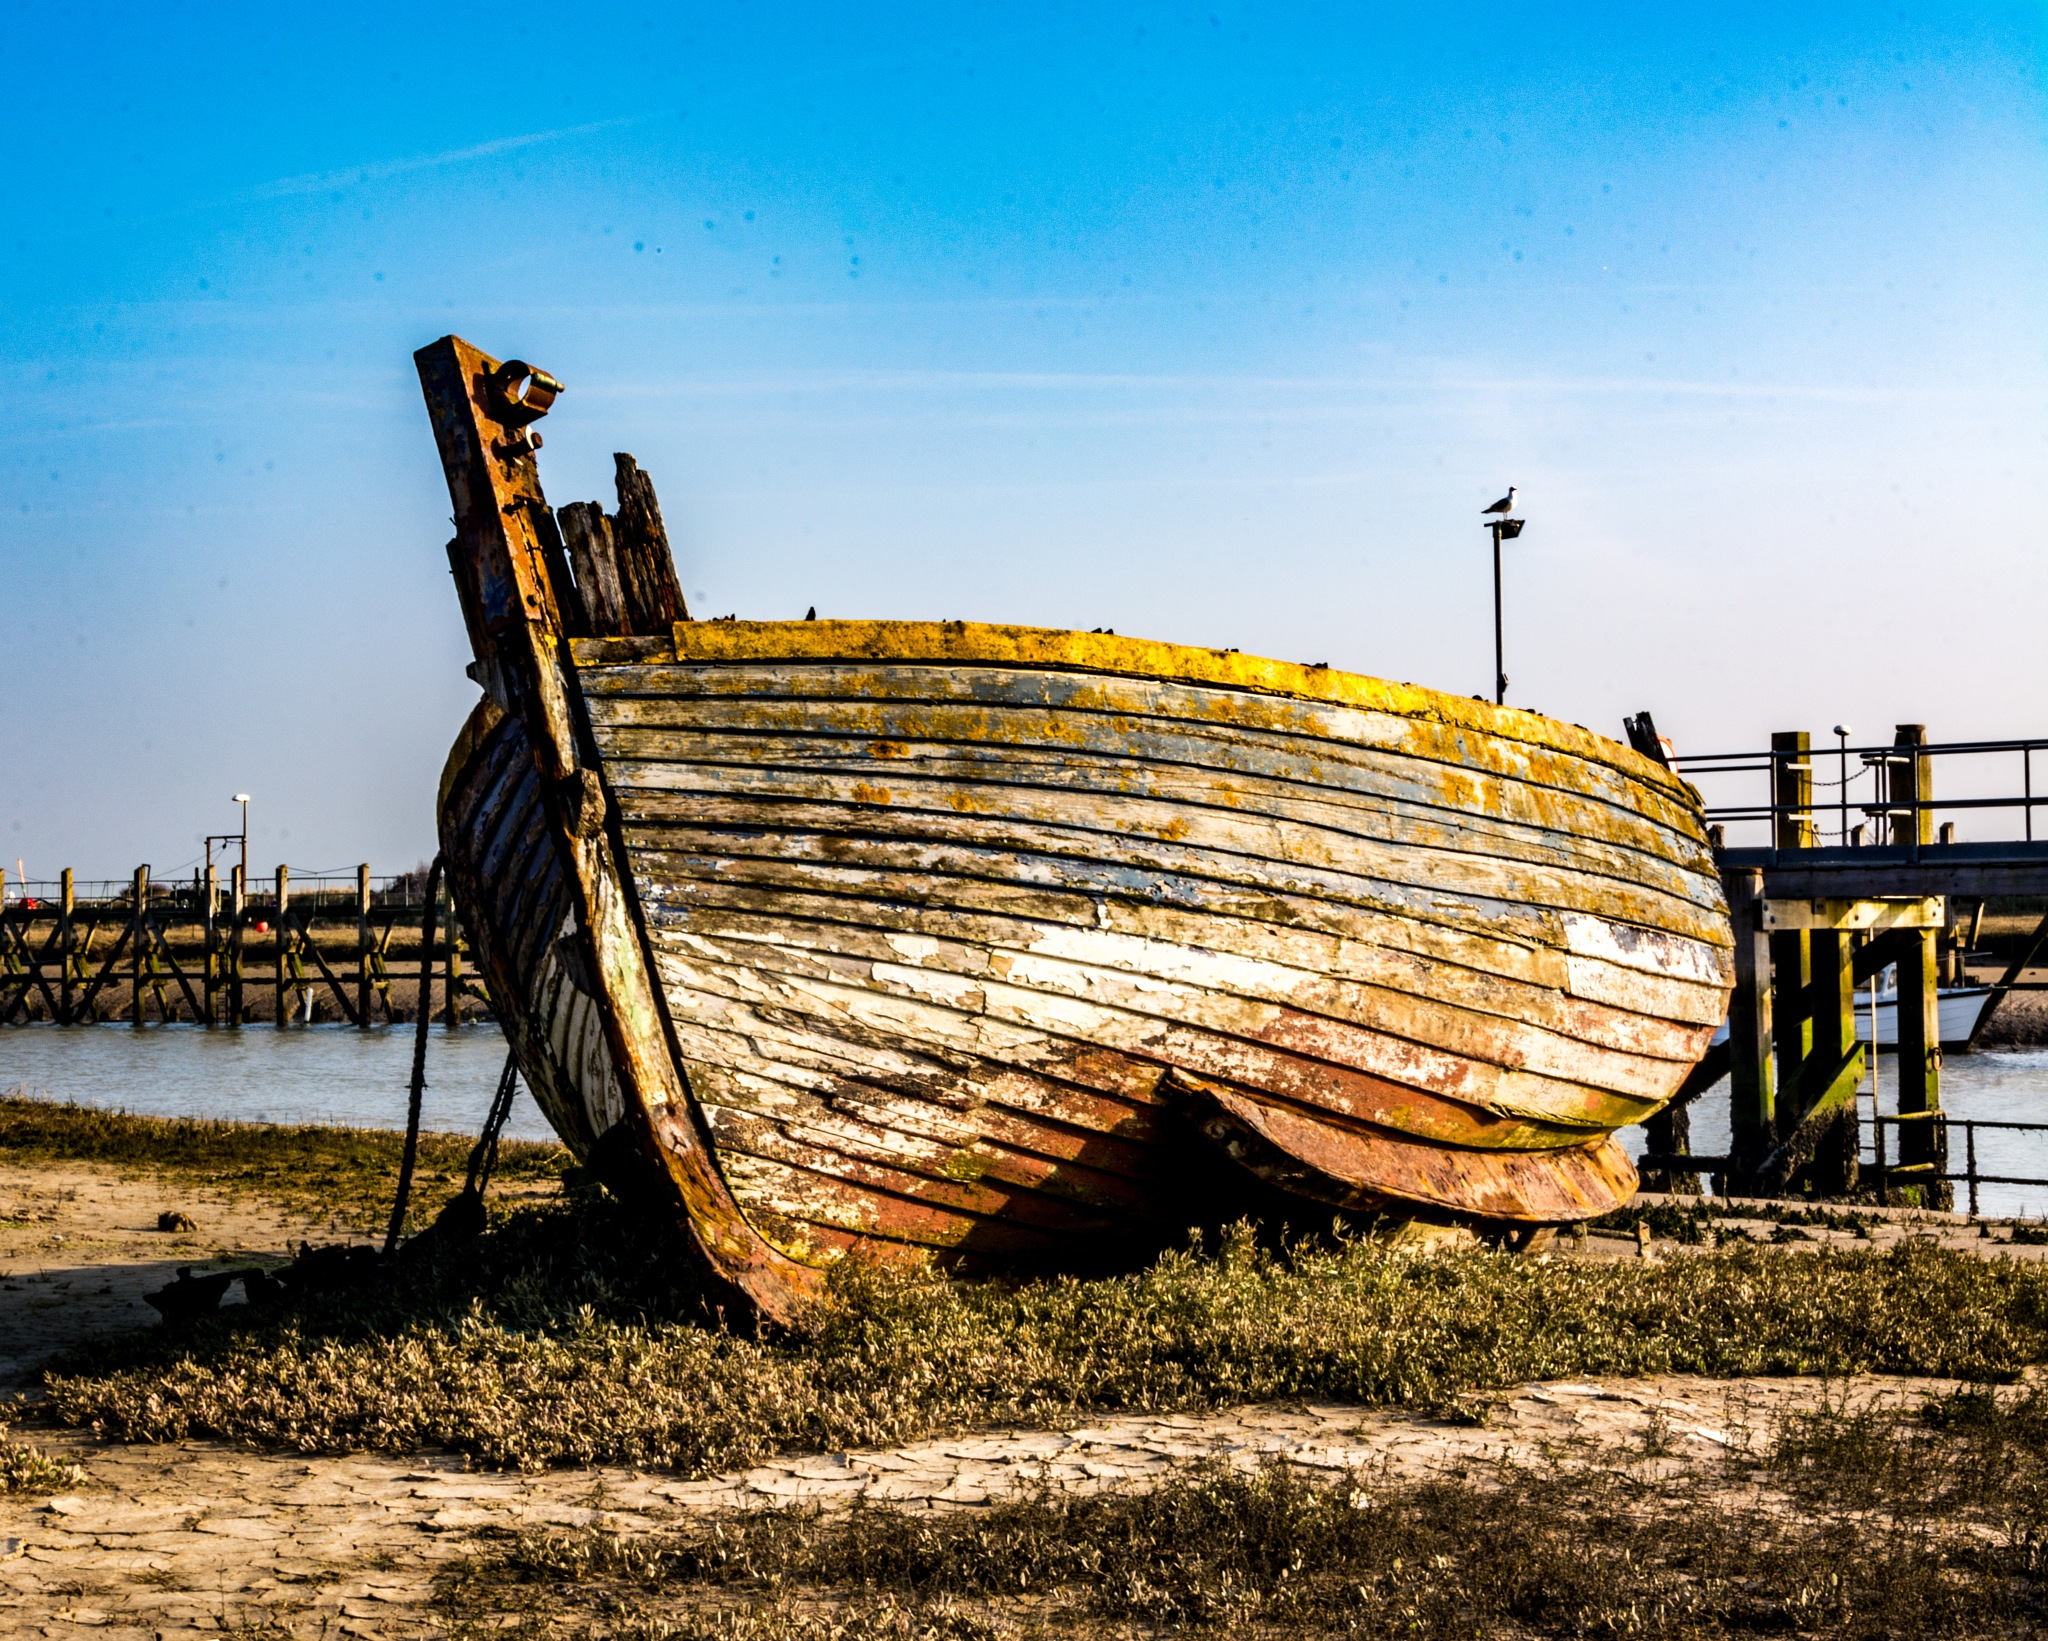 Wreck at Rye by Poetsoftheheart